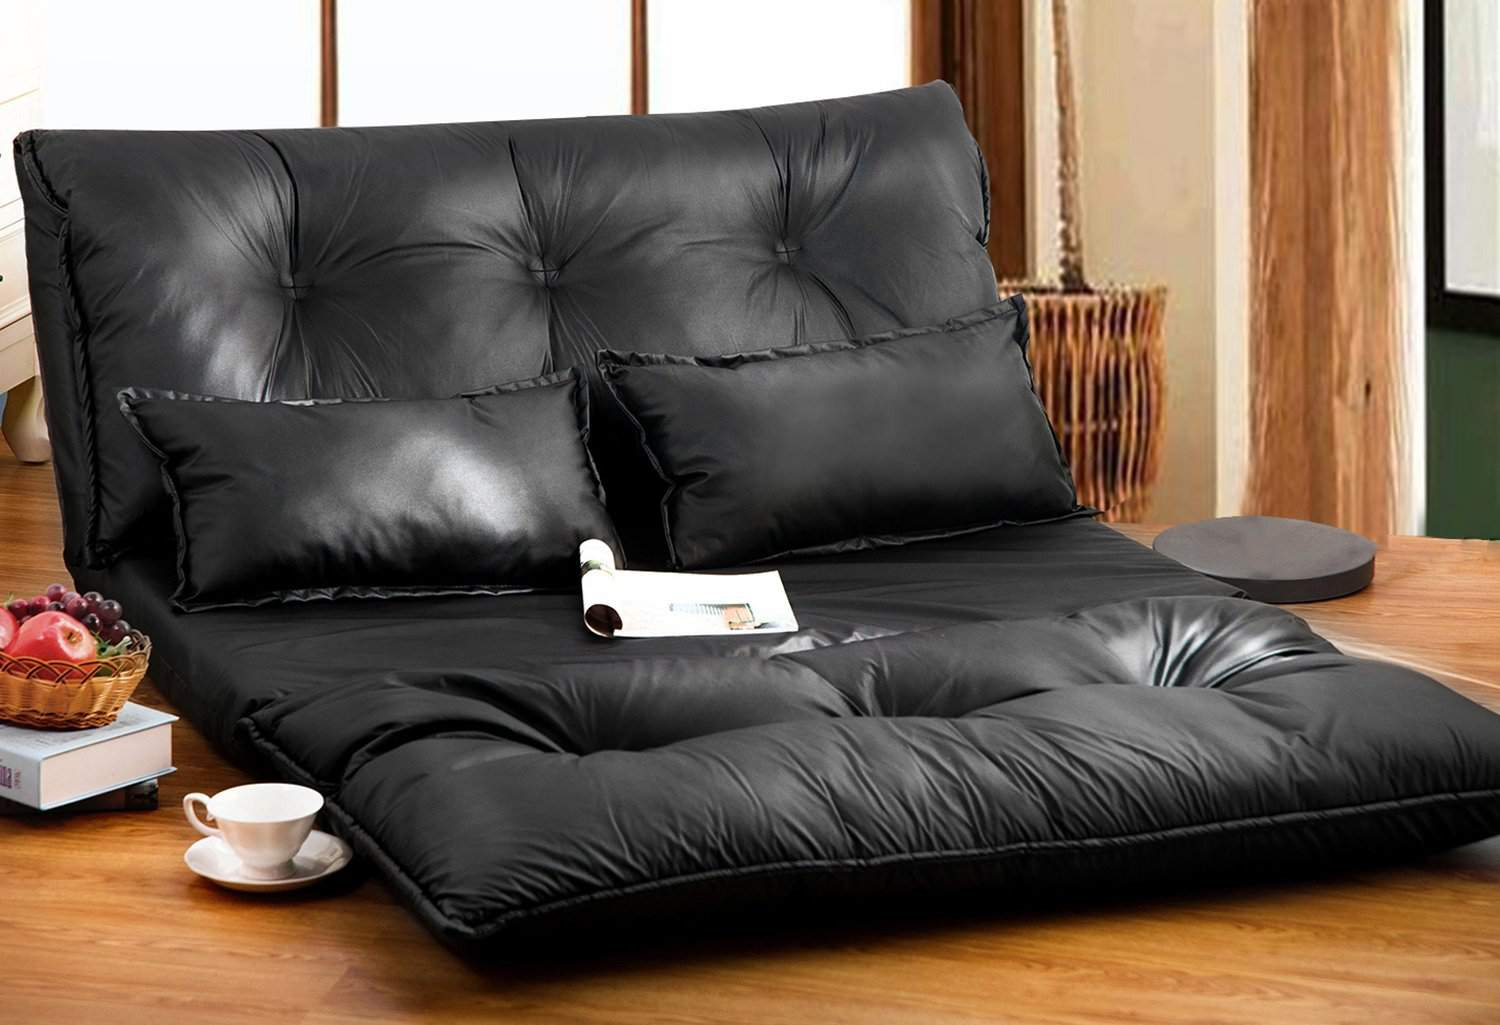 futon futons furniture decor bed ideas storage sofa home comfortable with